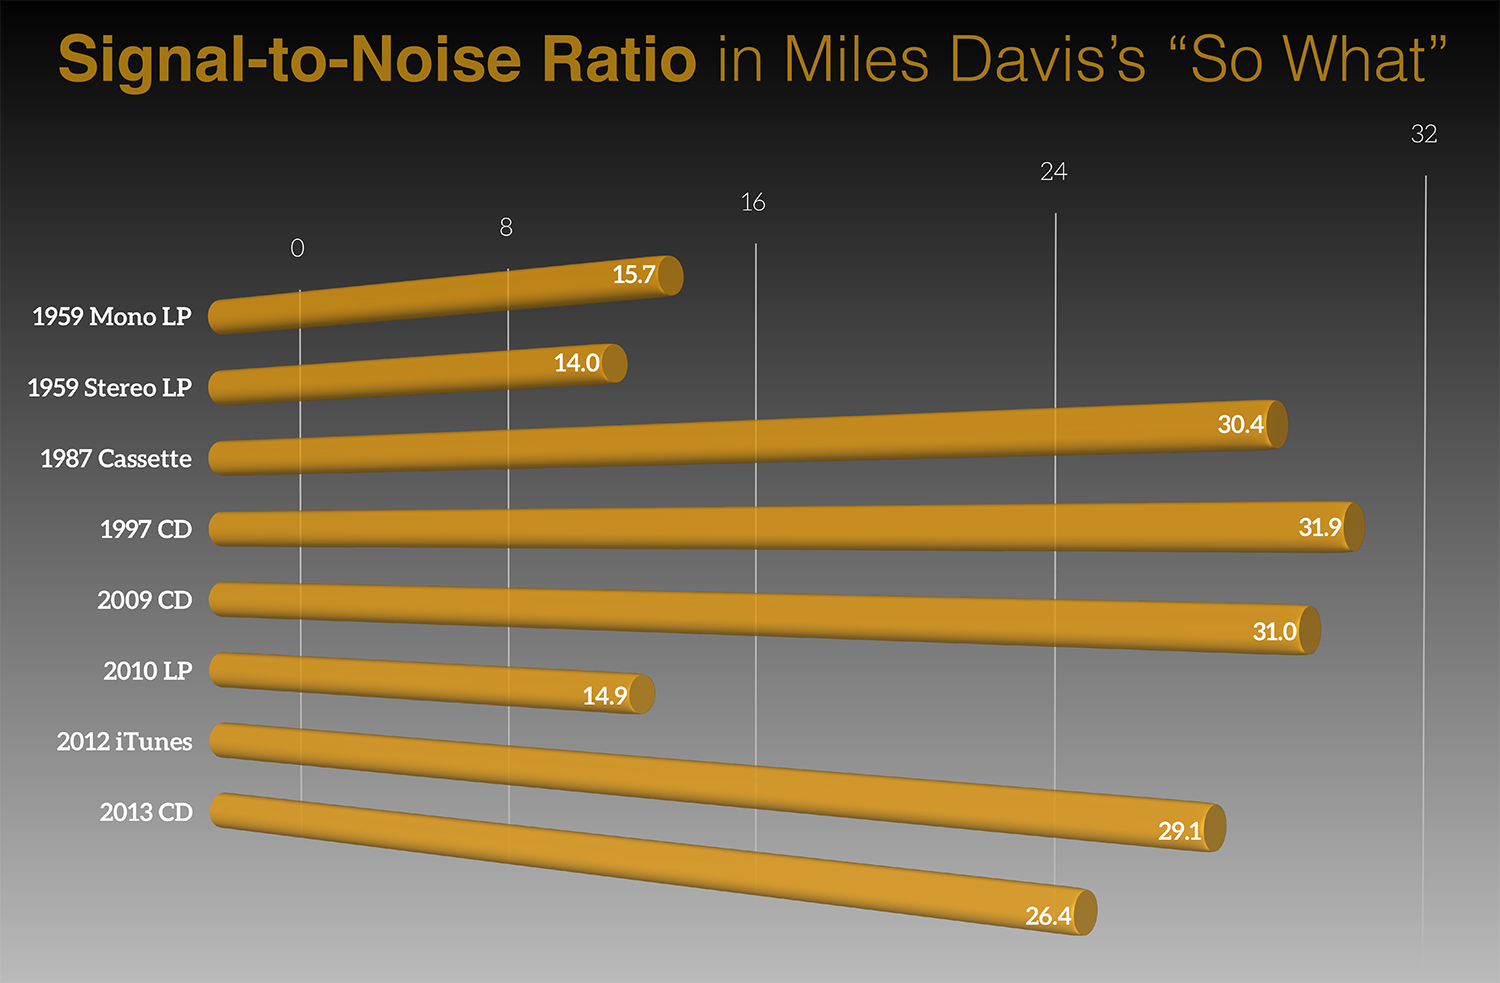 """bar chart shows the signal-to-noise ration in various recordings of Miles Davis's """"So What."""" 1959 mono lp = 15.7. 1959 stereo LP = 14. 1987 cassette = 30.4. 1997 CD = 31.9. 2009 CD = 31. 2010 LP = 14.0. 2012 iTunes = 29.1. 2013 CD = 26.4."""